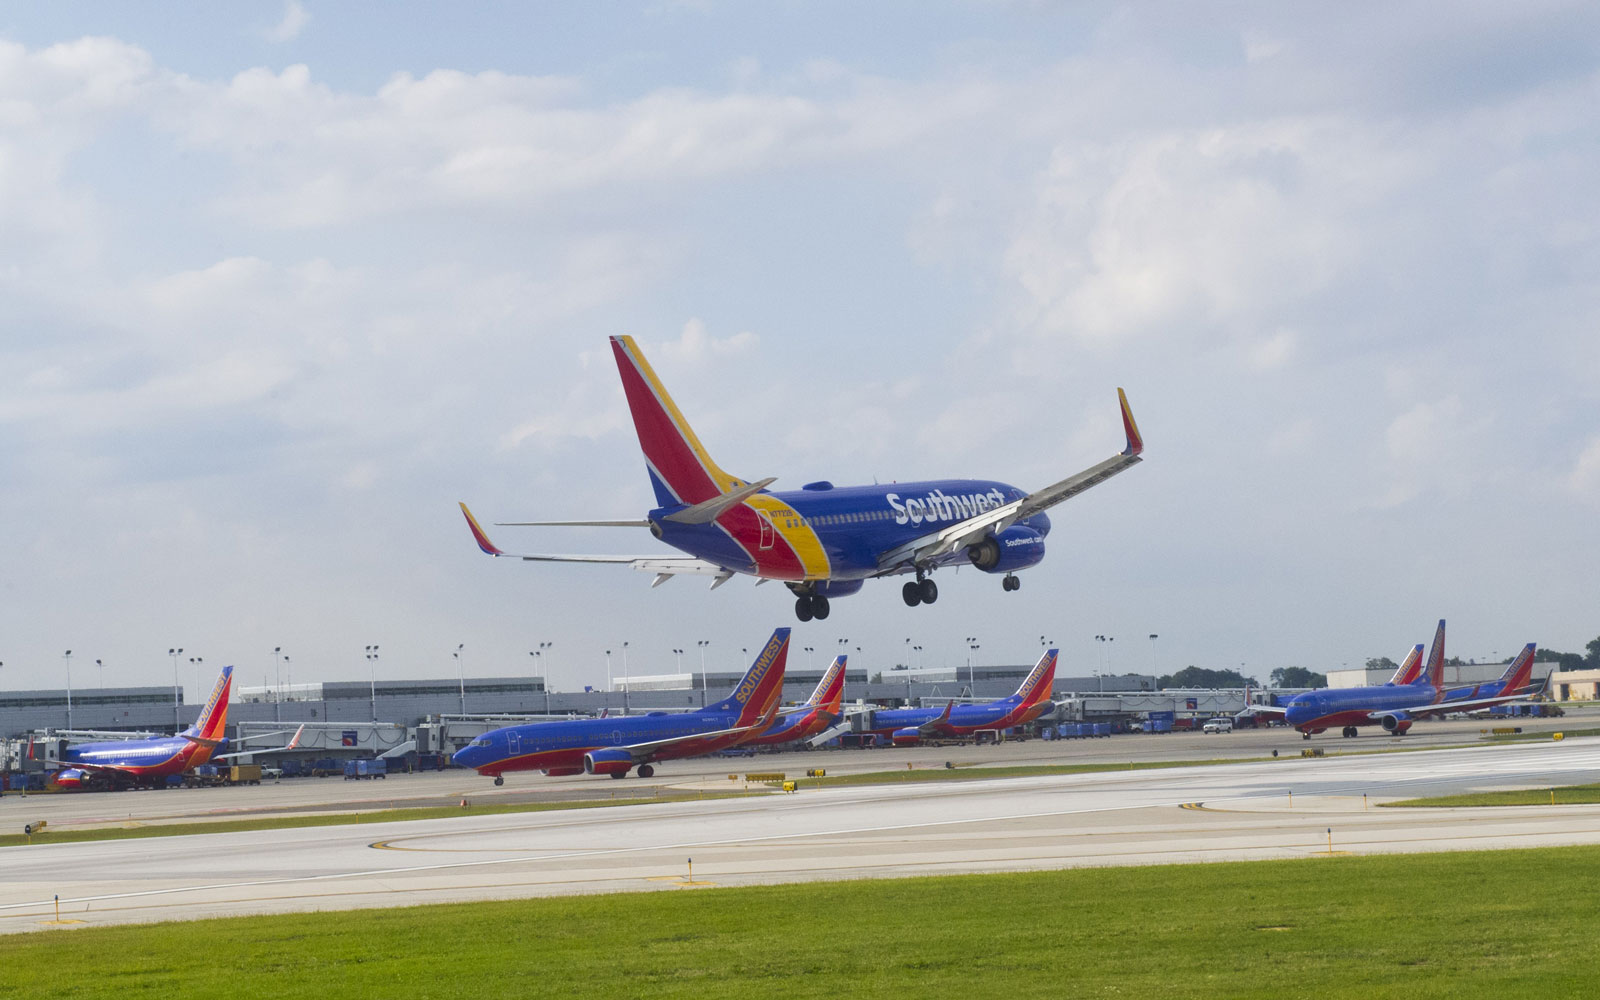 A Southwest flight attendant is the master of voices during this landing announcement.